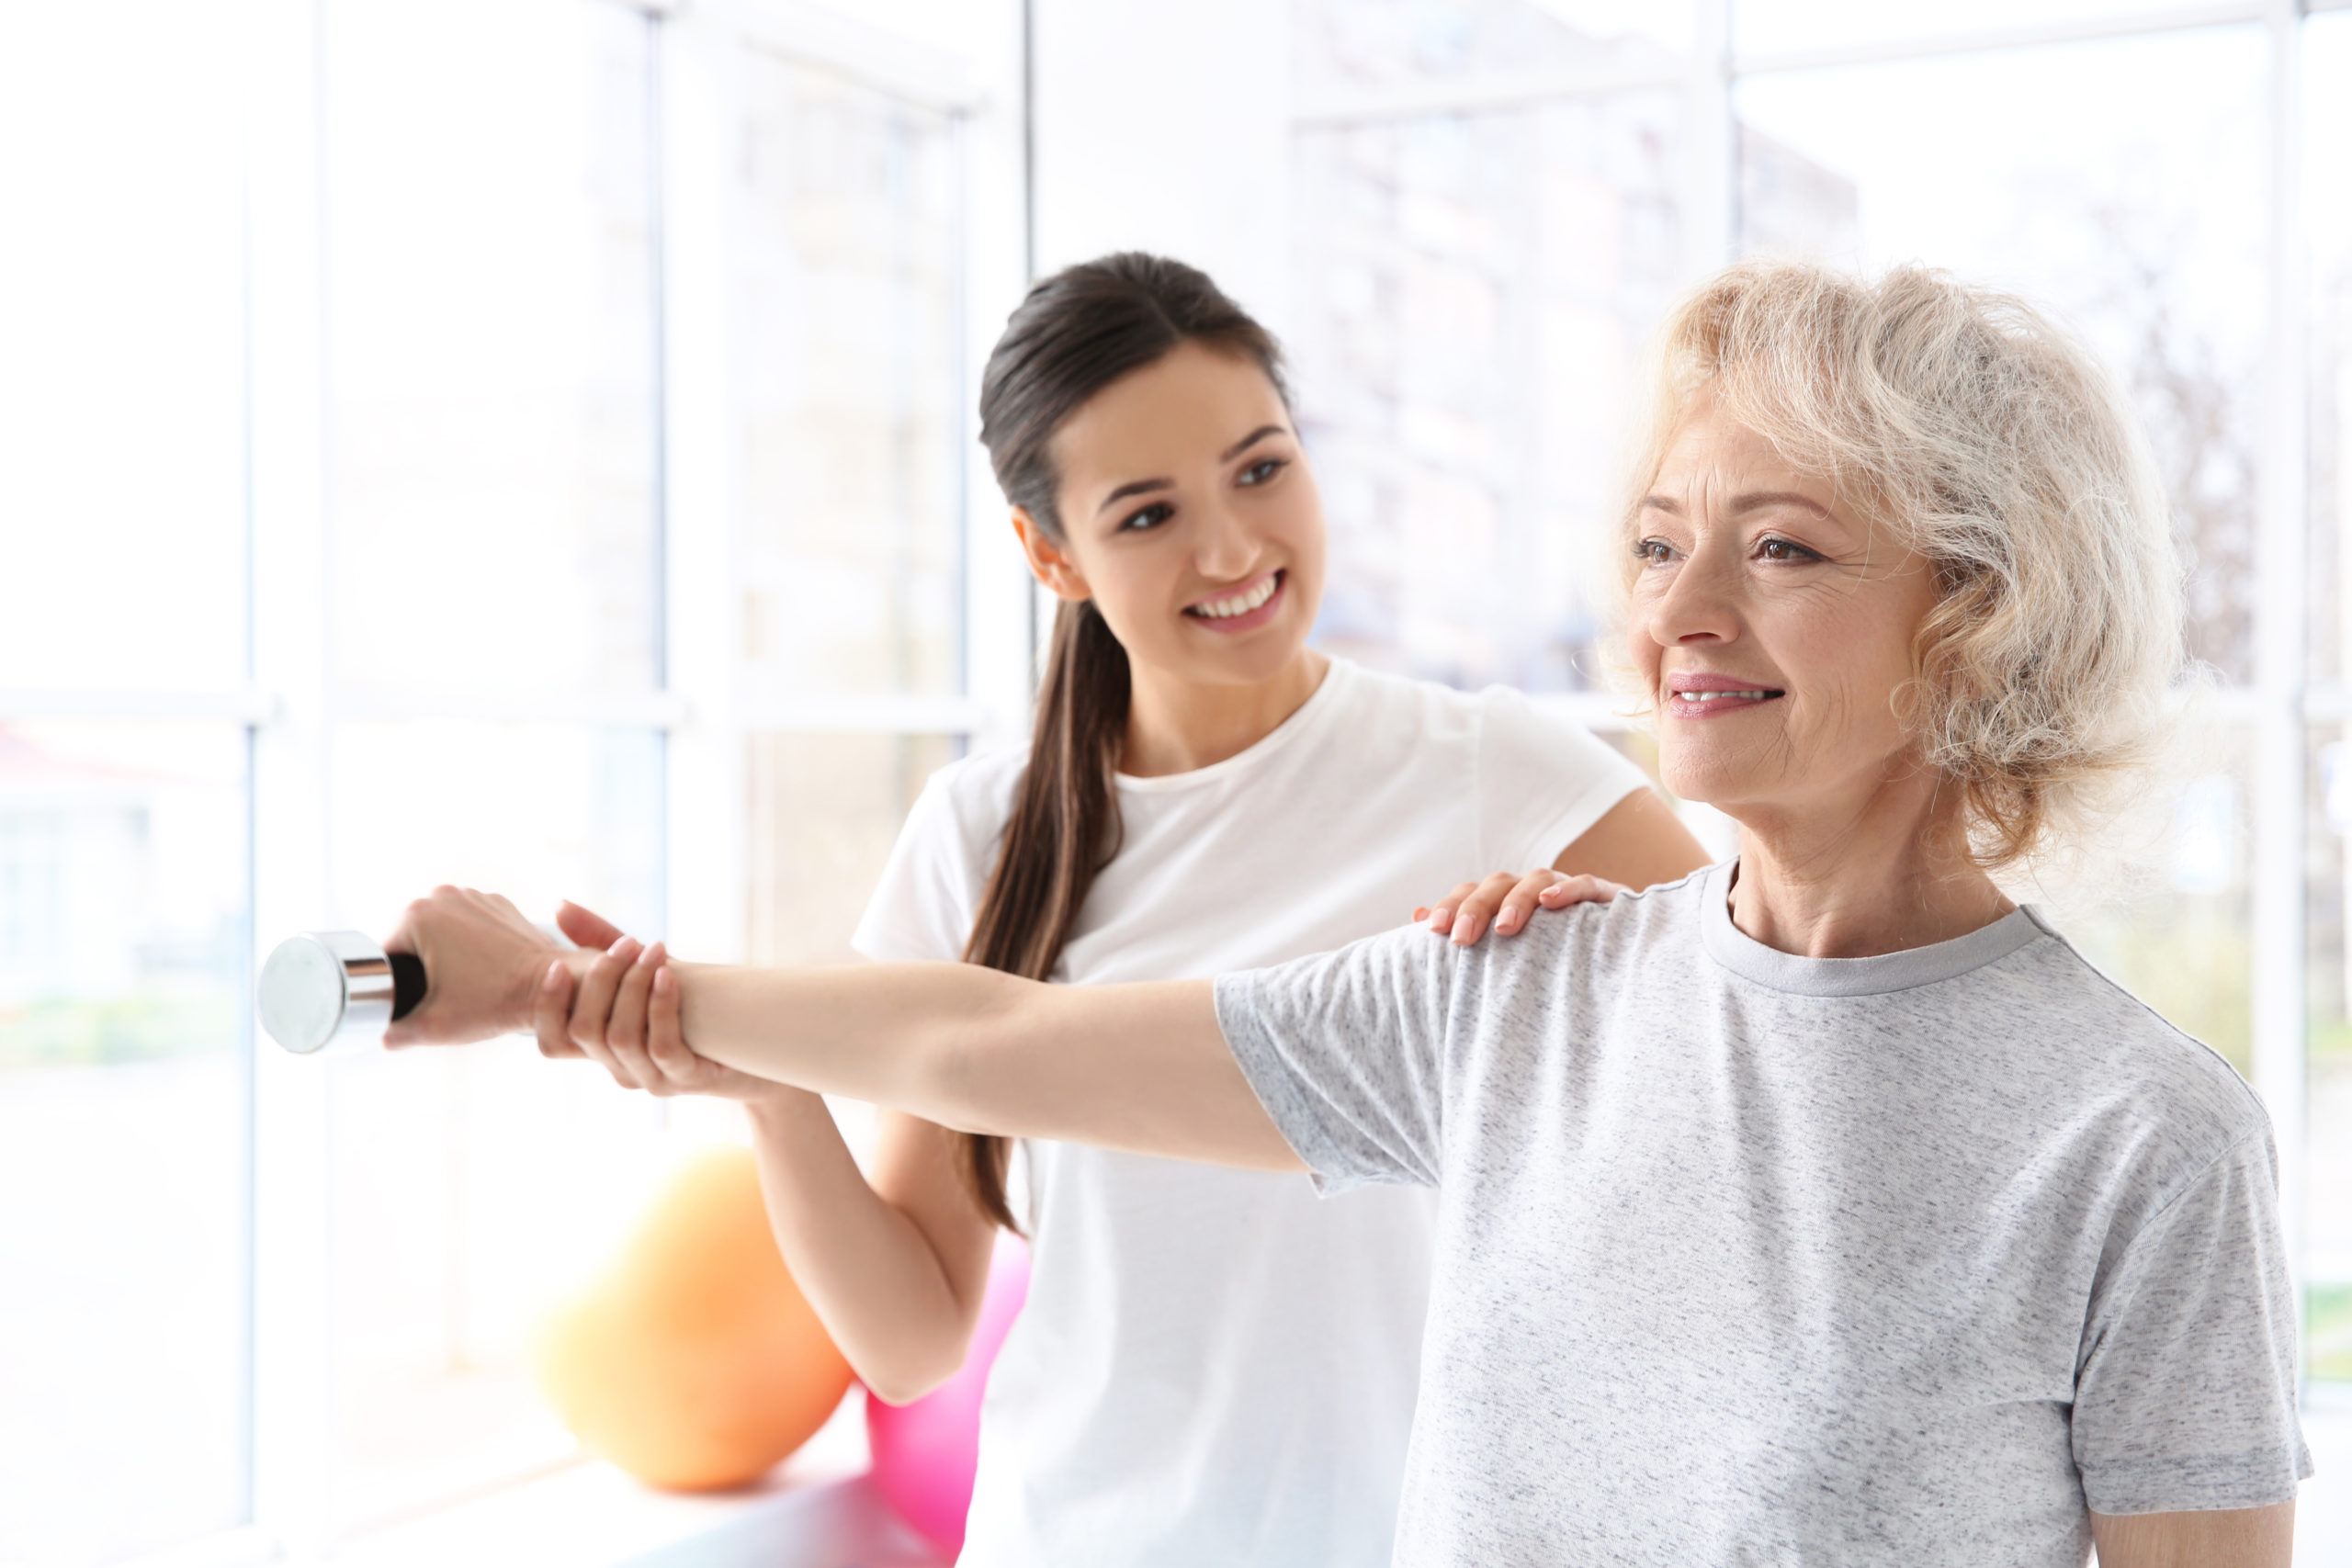 exercises to do after surgery - Home Physio Group